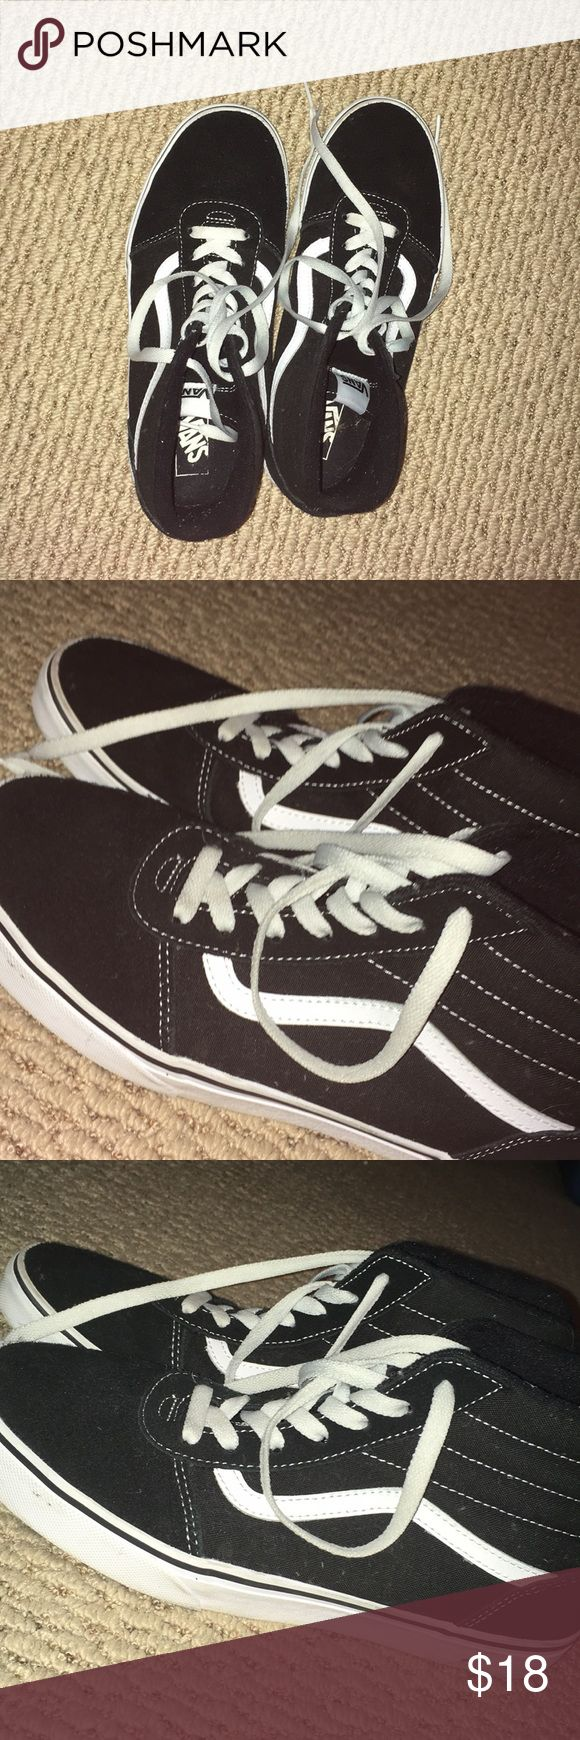 Vans shoes Worn once, good condition Vans Shoes Sneakers